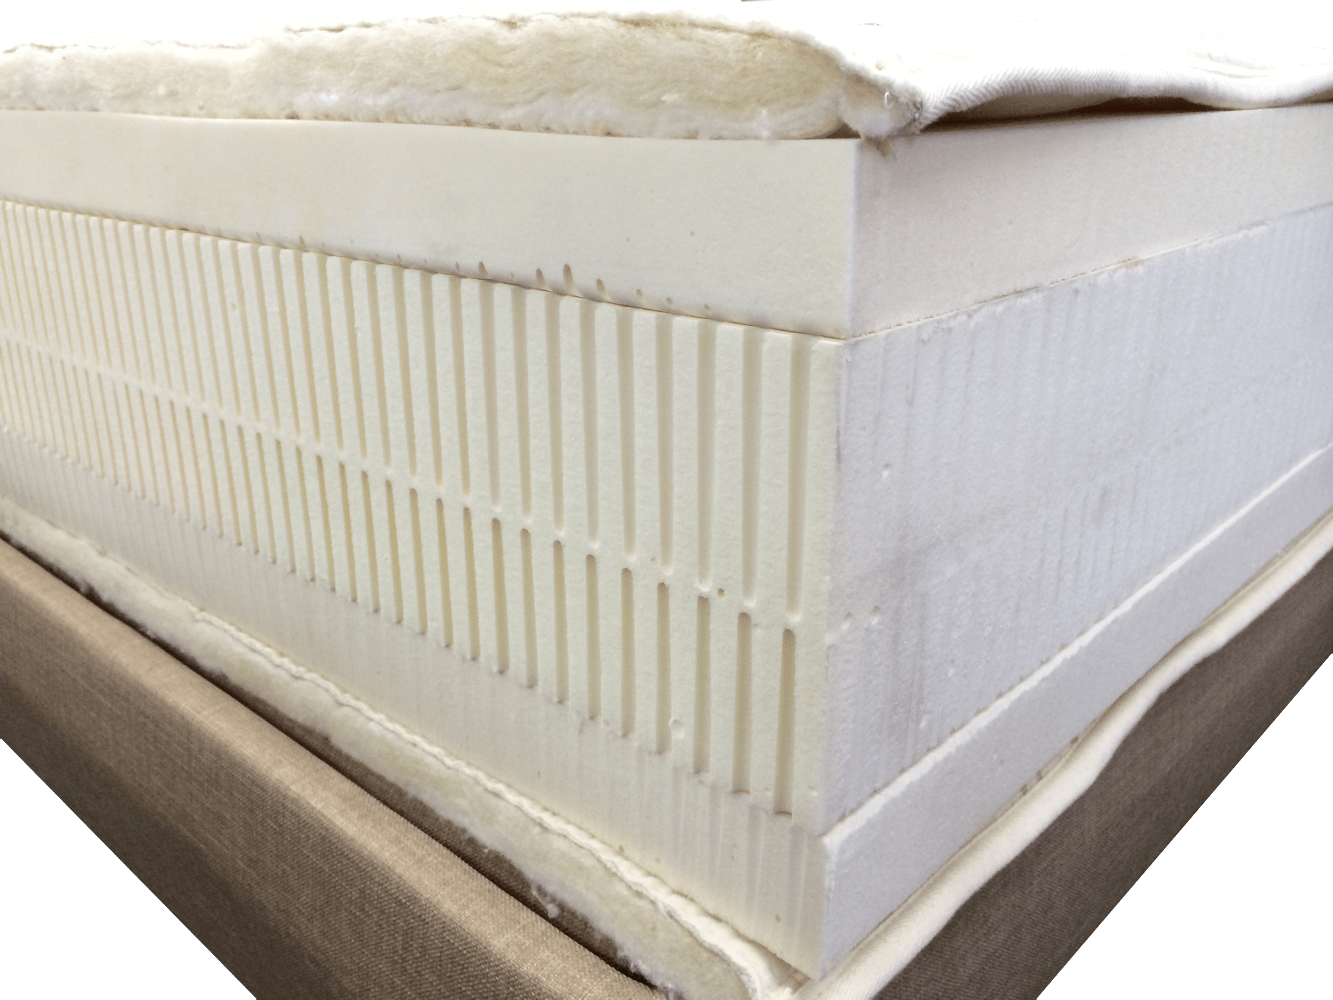 THE ULTIMATE LATEX MATTRESS BY LATEXPEDIC Los Angeles Latex Foam Mattress LA latexpedic beds